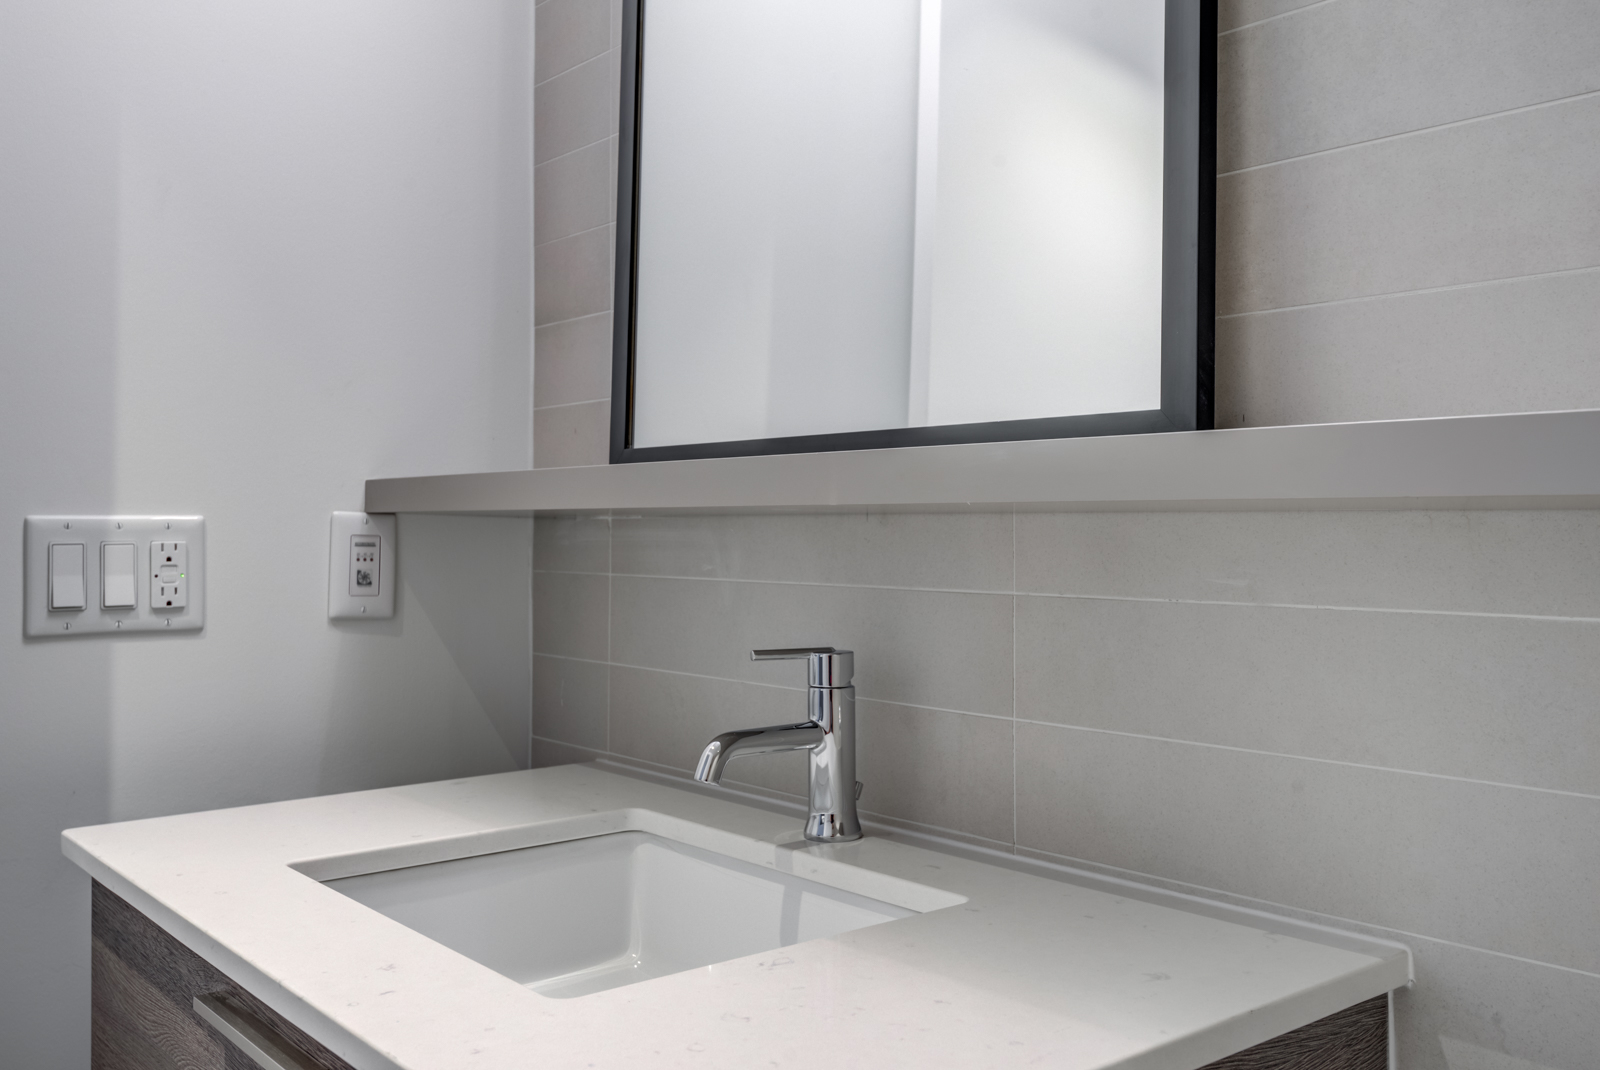 Close up of sink with white counter, shelf and mirror.